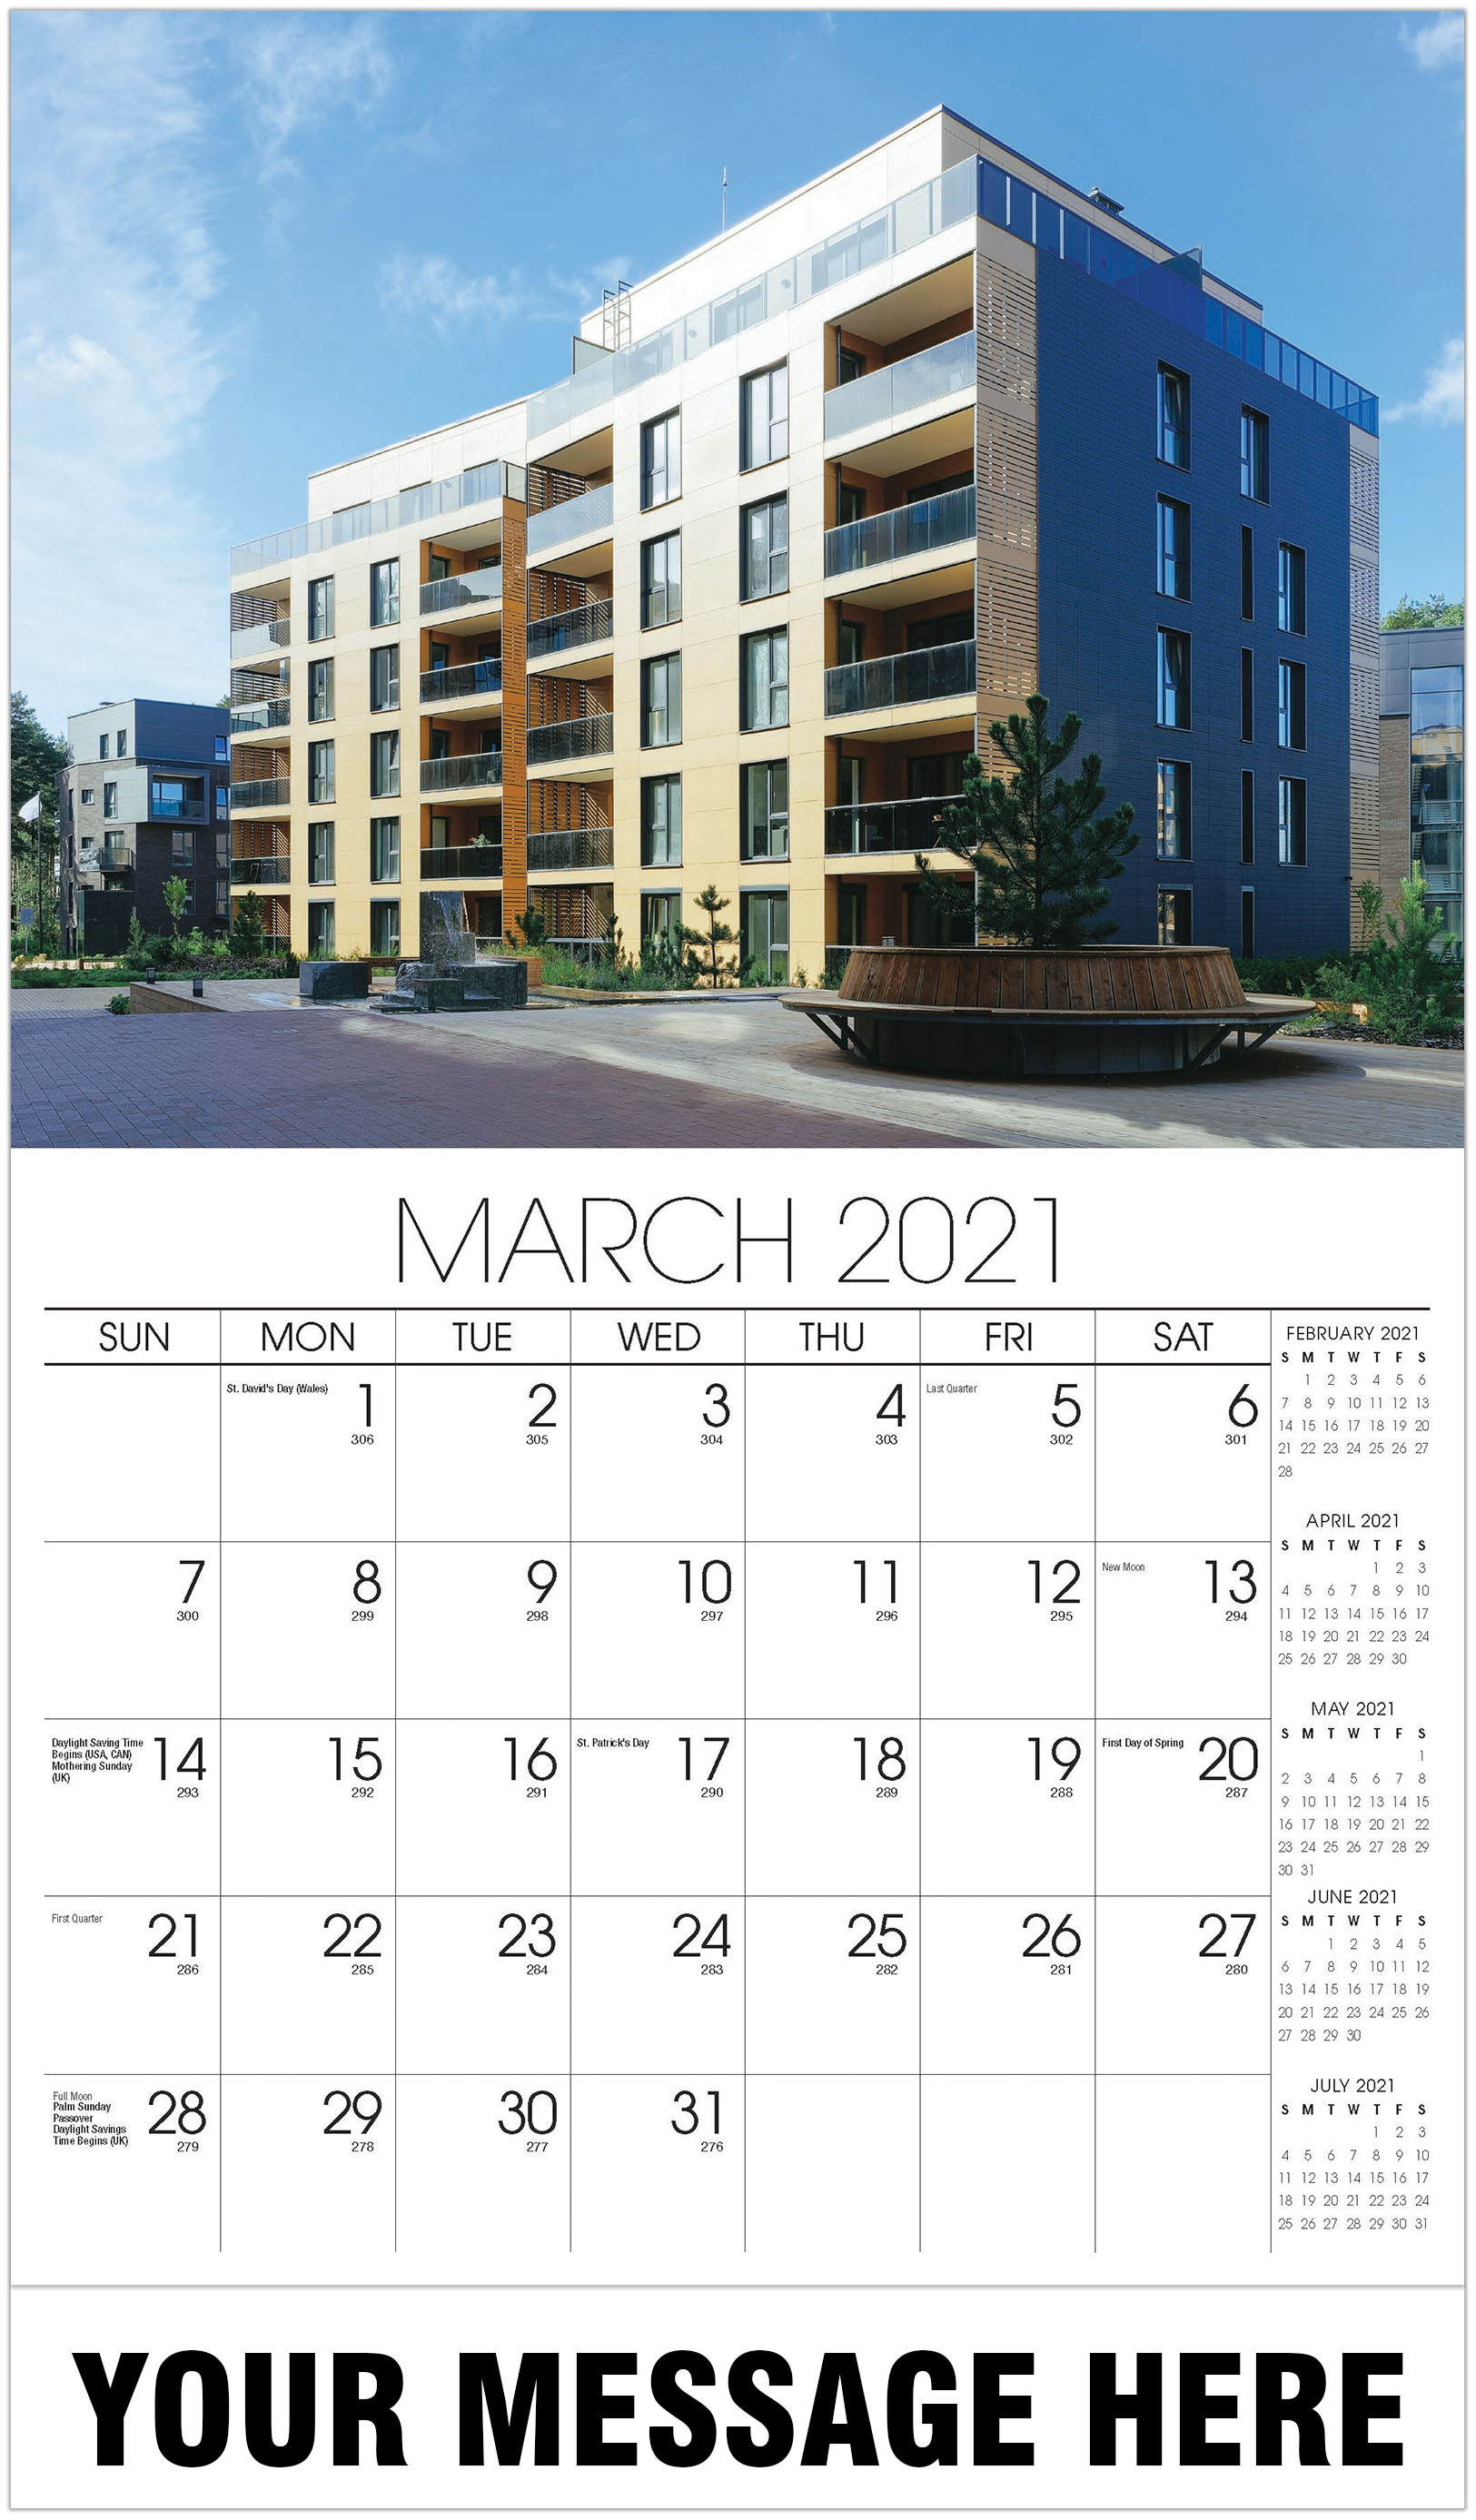 Luxury Homes Calendar - March - Homes 2021 Promotional Calendar